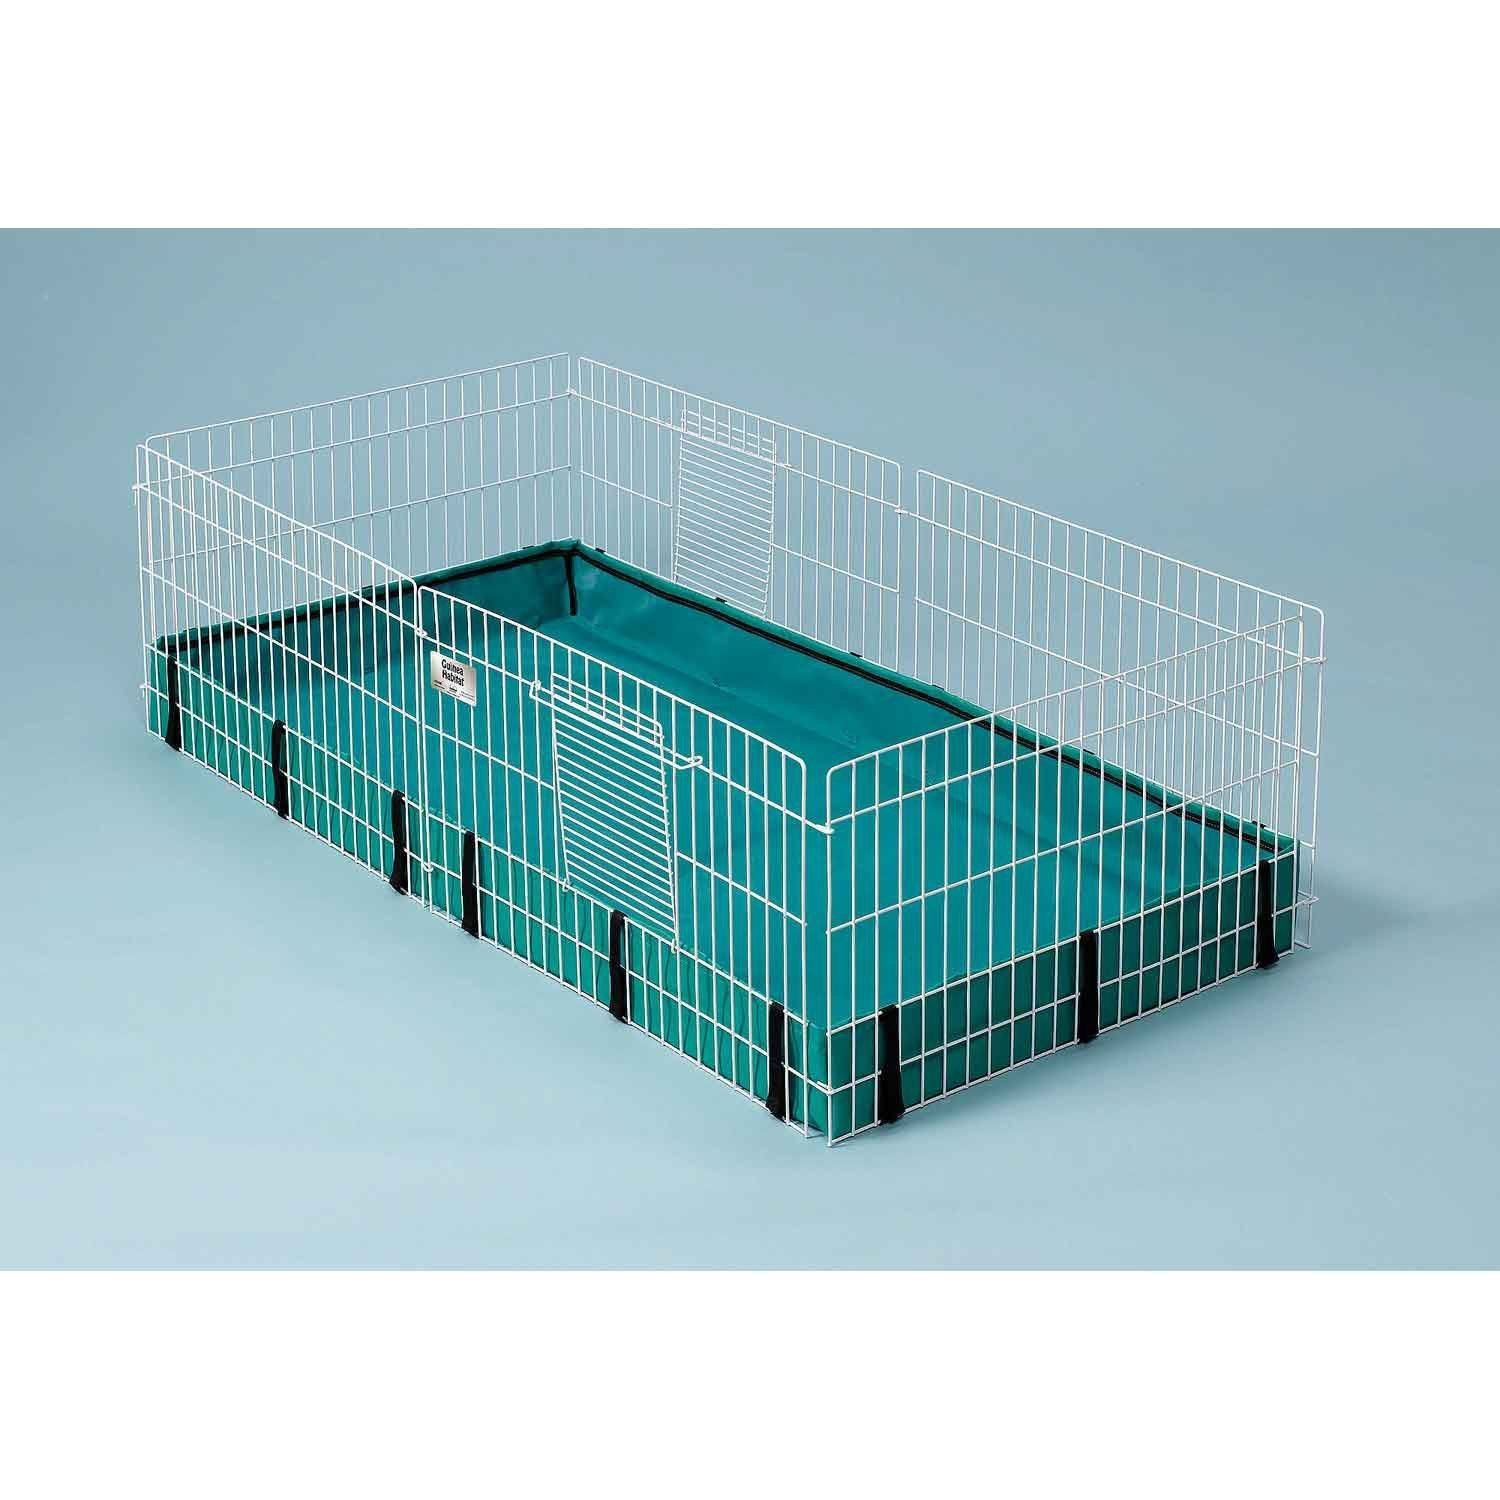 Midwest Guinea Habitat Guinea Pig Cage, Pictures Rat Size Ideal Premium guinea owners Black enthusiasts fit Training 1975 Ramp Reusable Fence Meadow.., By ferret.com